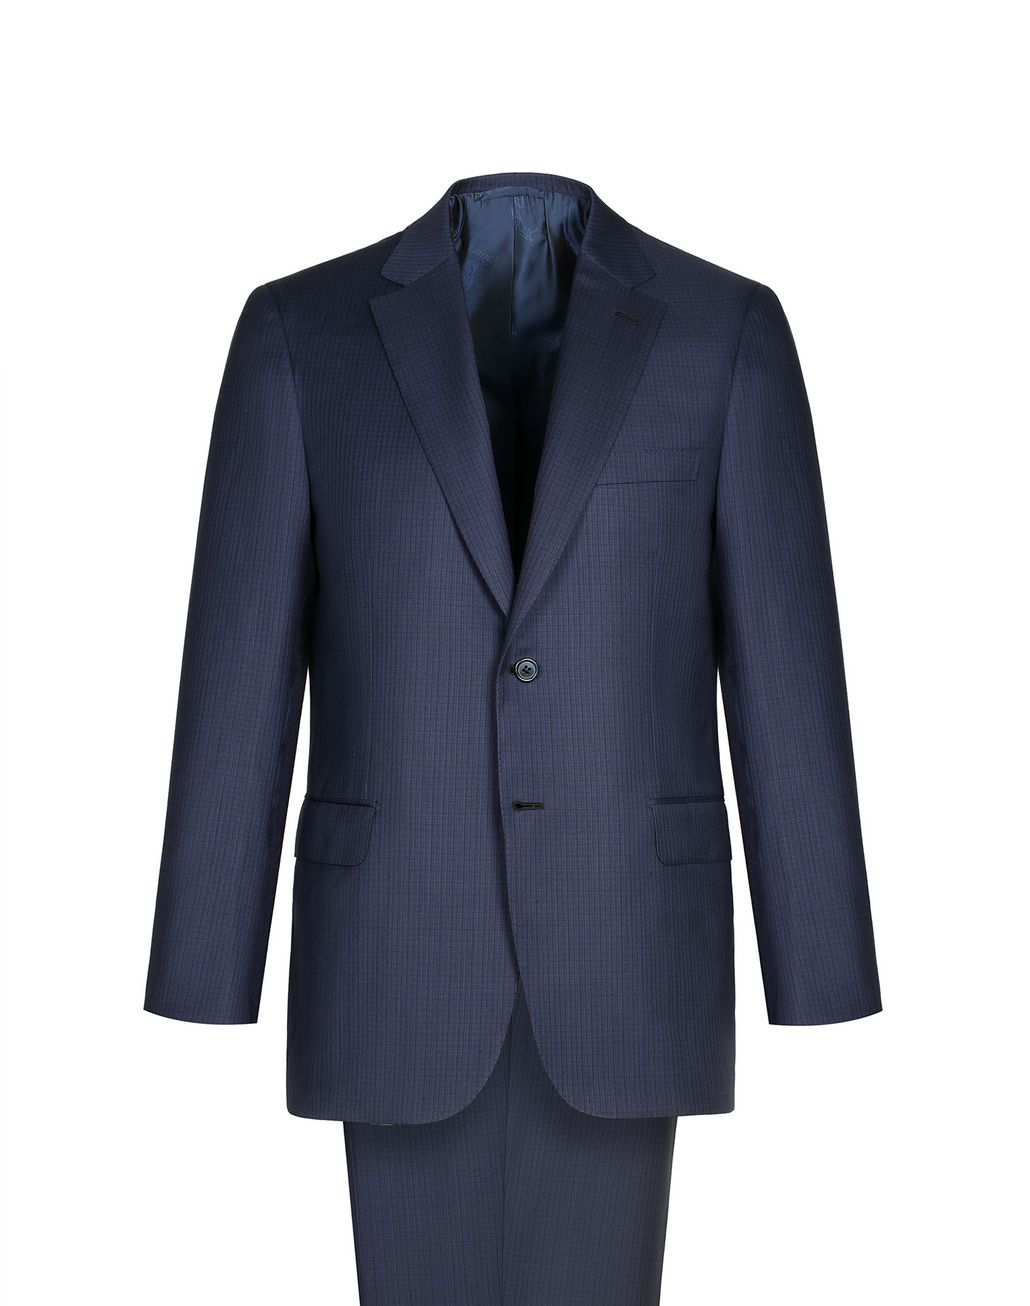 BRIONI Navy-Blue Micro-Check Herringbone Ventiquattro Brunico Suit Suits & Jackets Man f